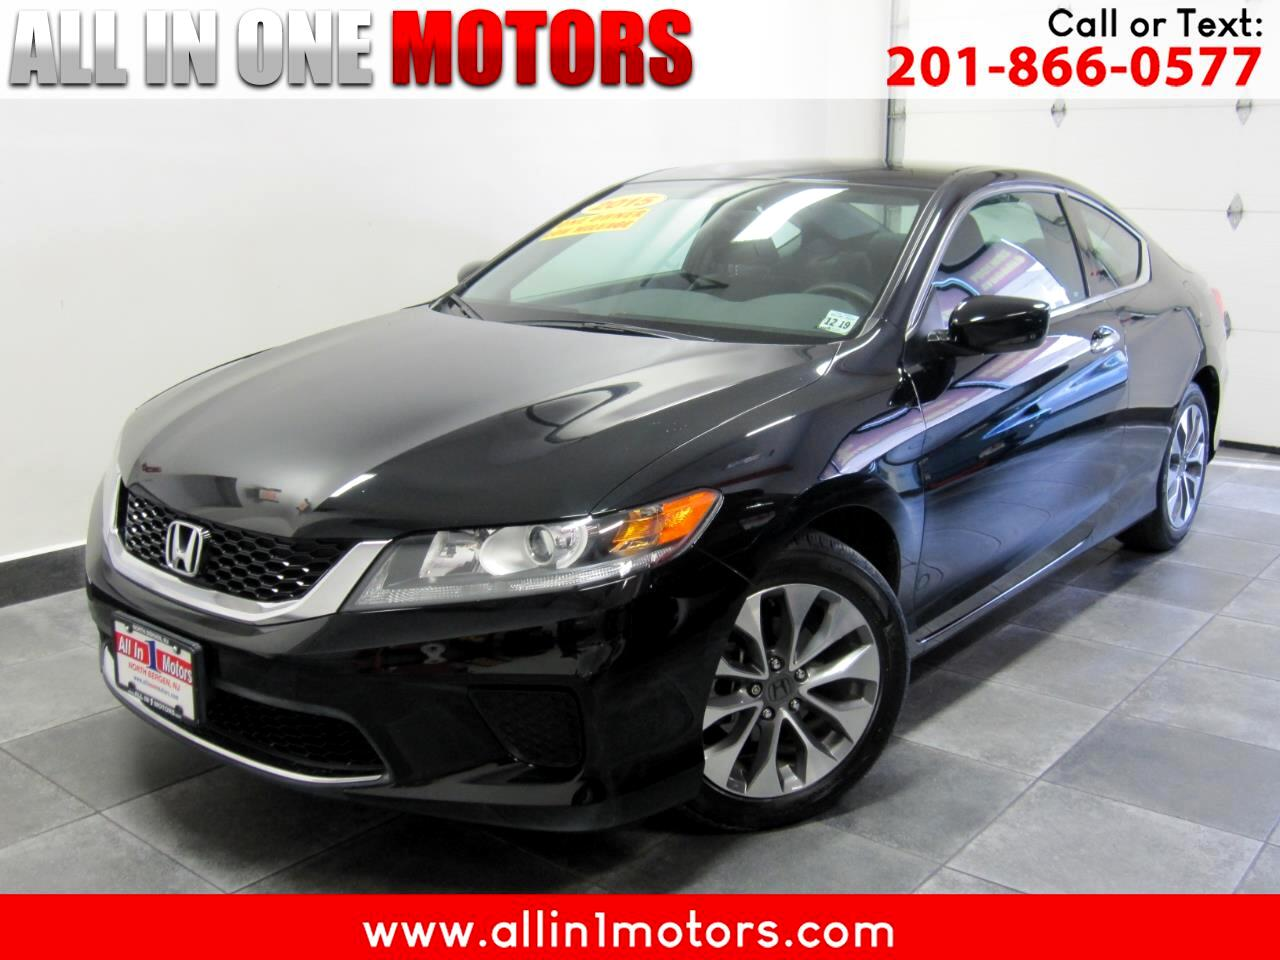 2015 Honda Accord Coupe 2dr I4 Man LX-S